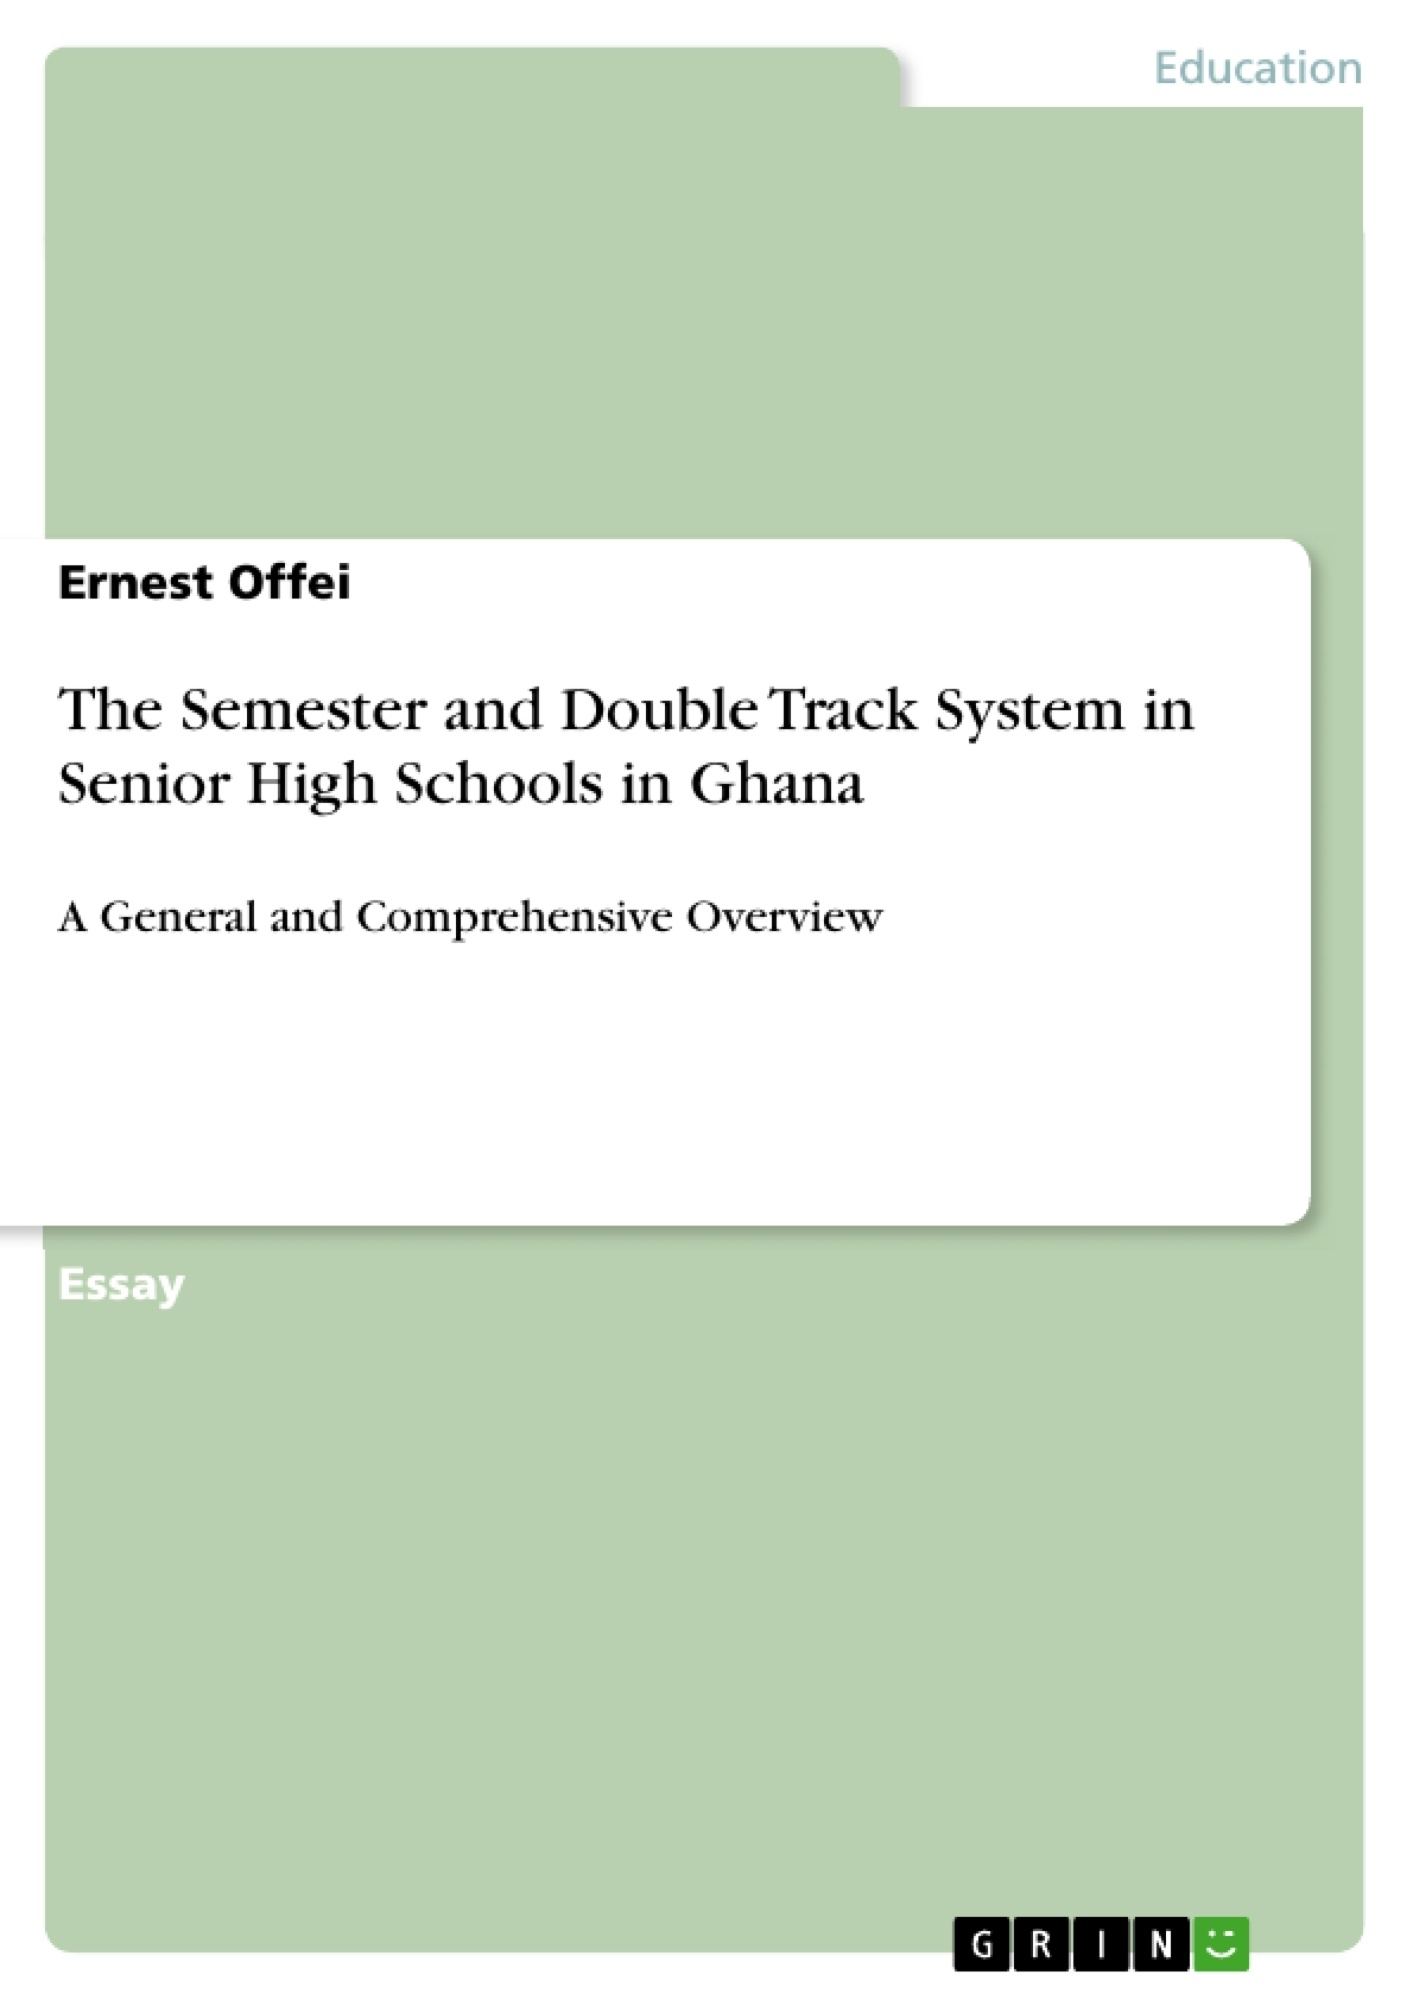 Title: The Semester and Double Track System in Senior High Schools in Ghana